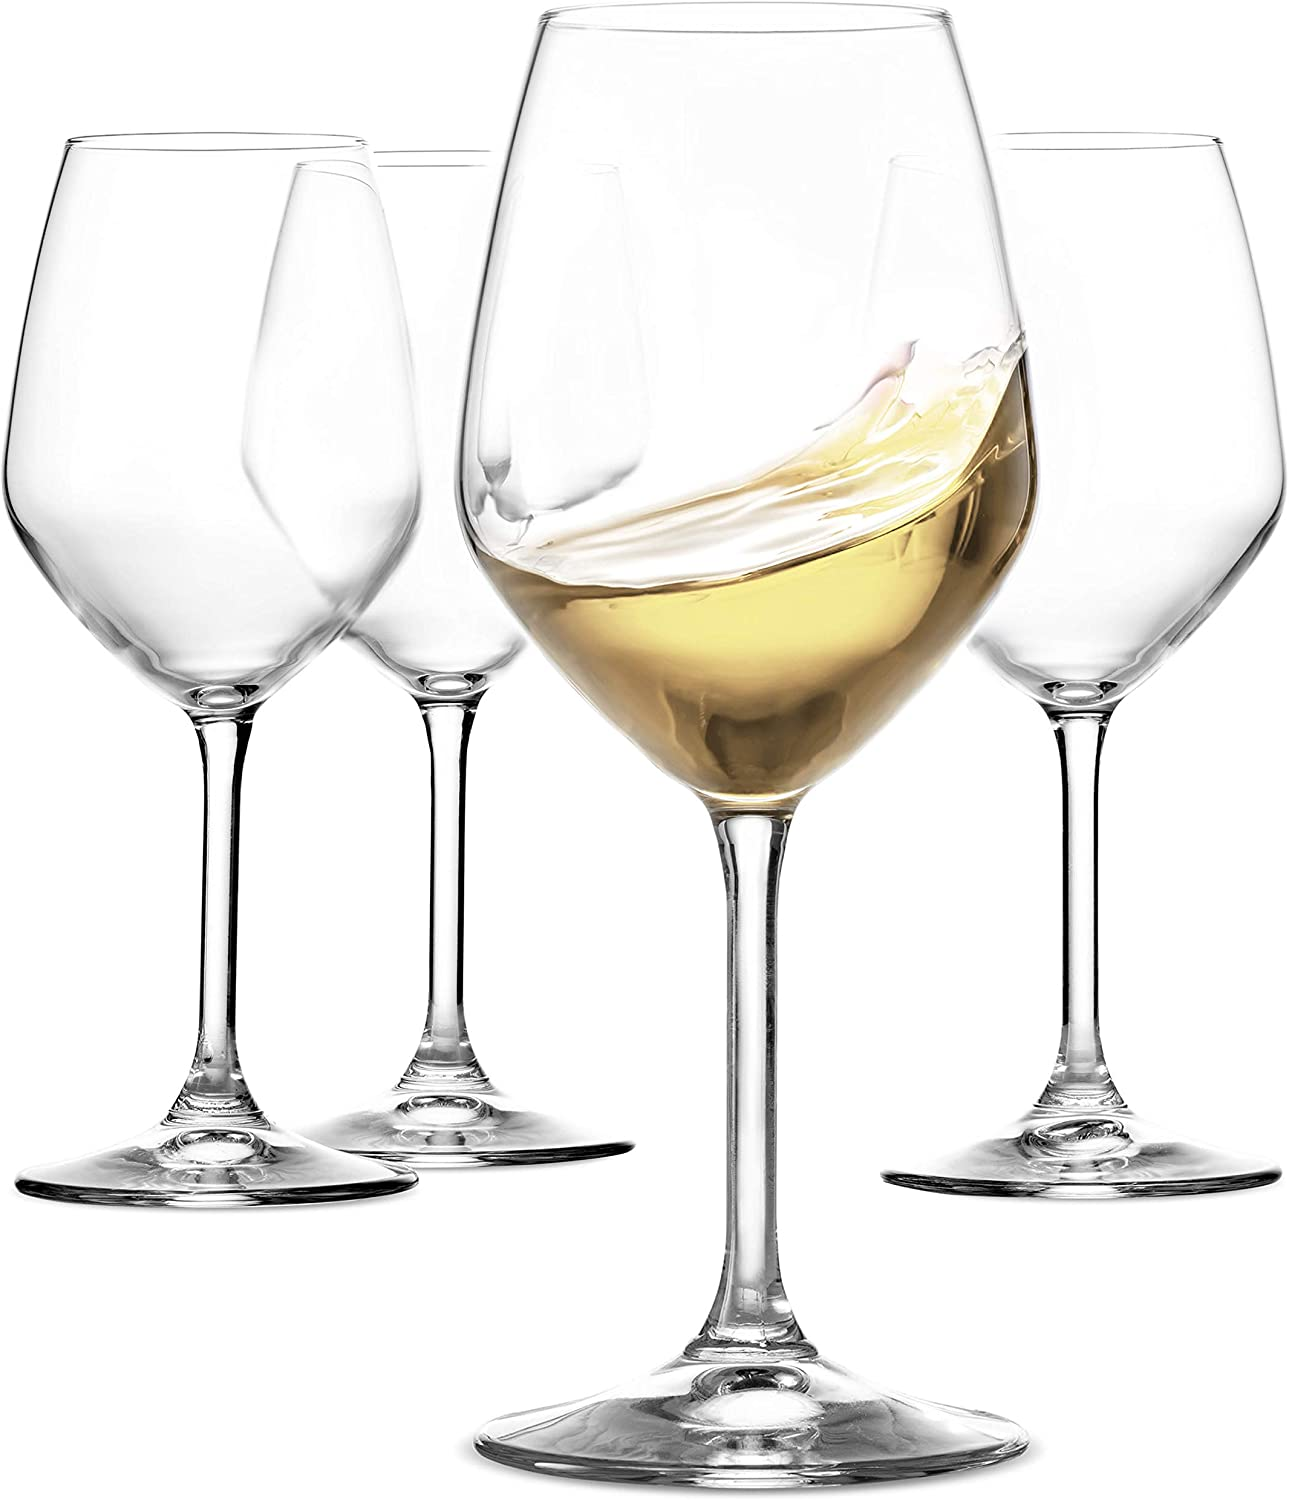 Amazon Com Paksh Novelty Italian Wine Glasses For Parties Weddings Gifting Clear Wine Glass For Red And White Wine Set Of 4 Wine Glasses